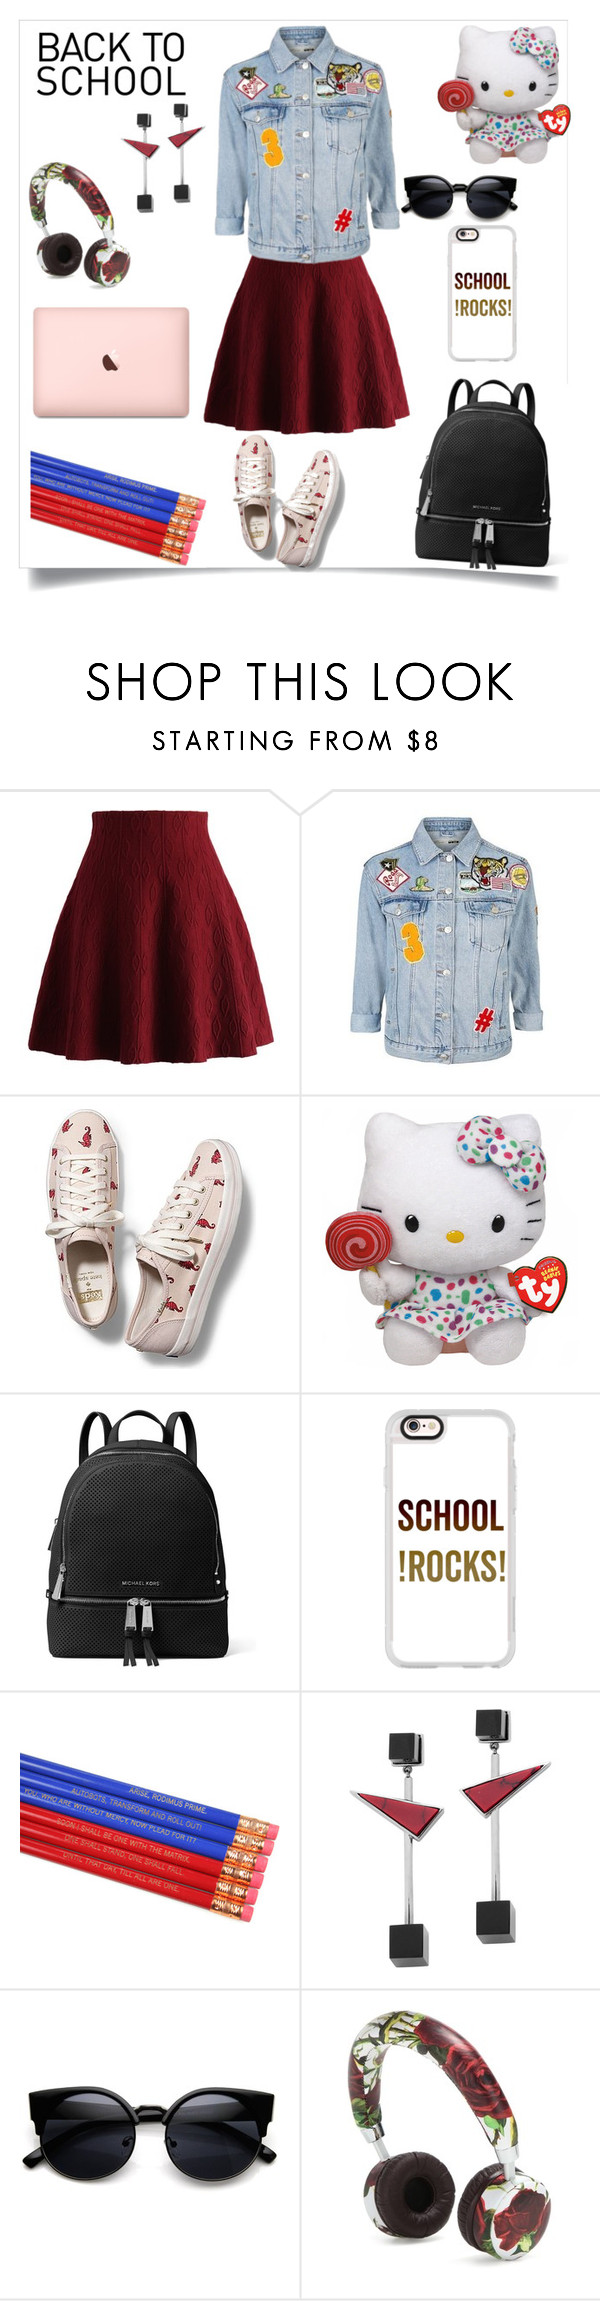 """""""Back to school"""" by horihime ❤ liked on Polyvore featuring Chicwish, Topshop, Keds, Hello Kitty, MICHAEL Michael Kors, Casetify, Eshvi and Dolce&Gabbana"""